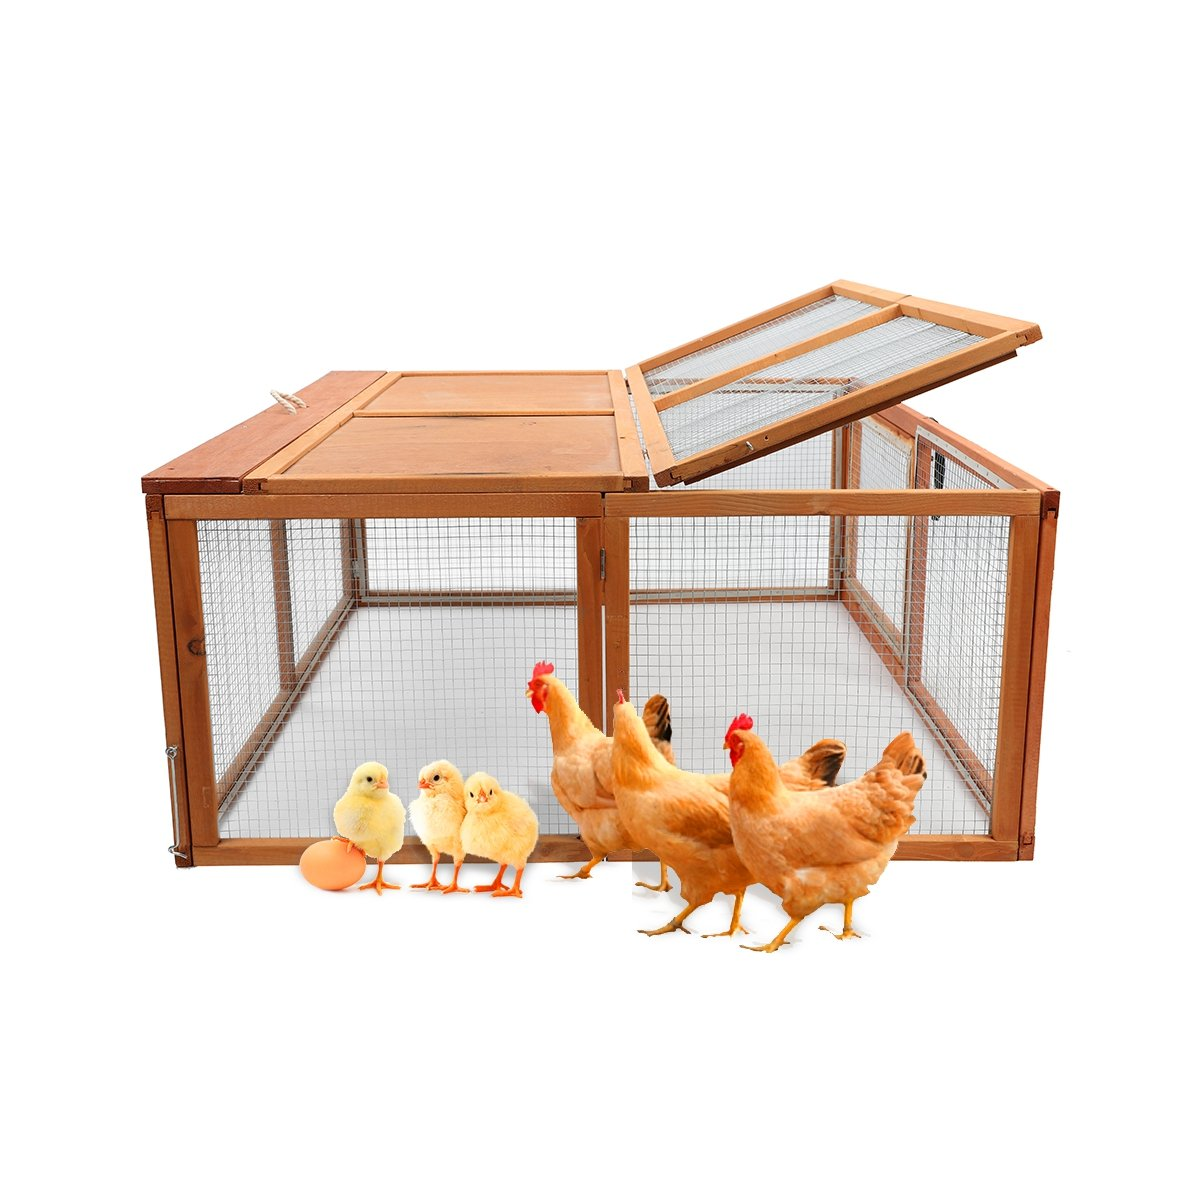 Magshion Wooden Chicken Coop Rabbit Hutch Pet Cage Wood Small Animal Poultry Cage Run (HUTCH003)